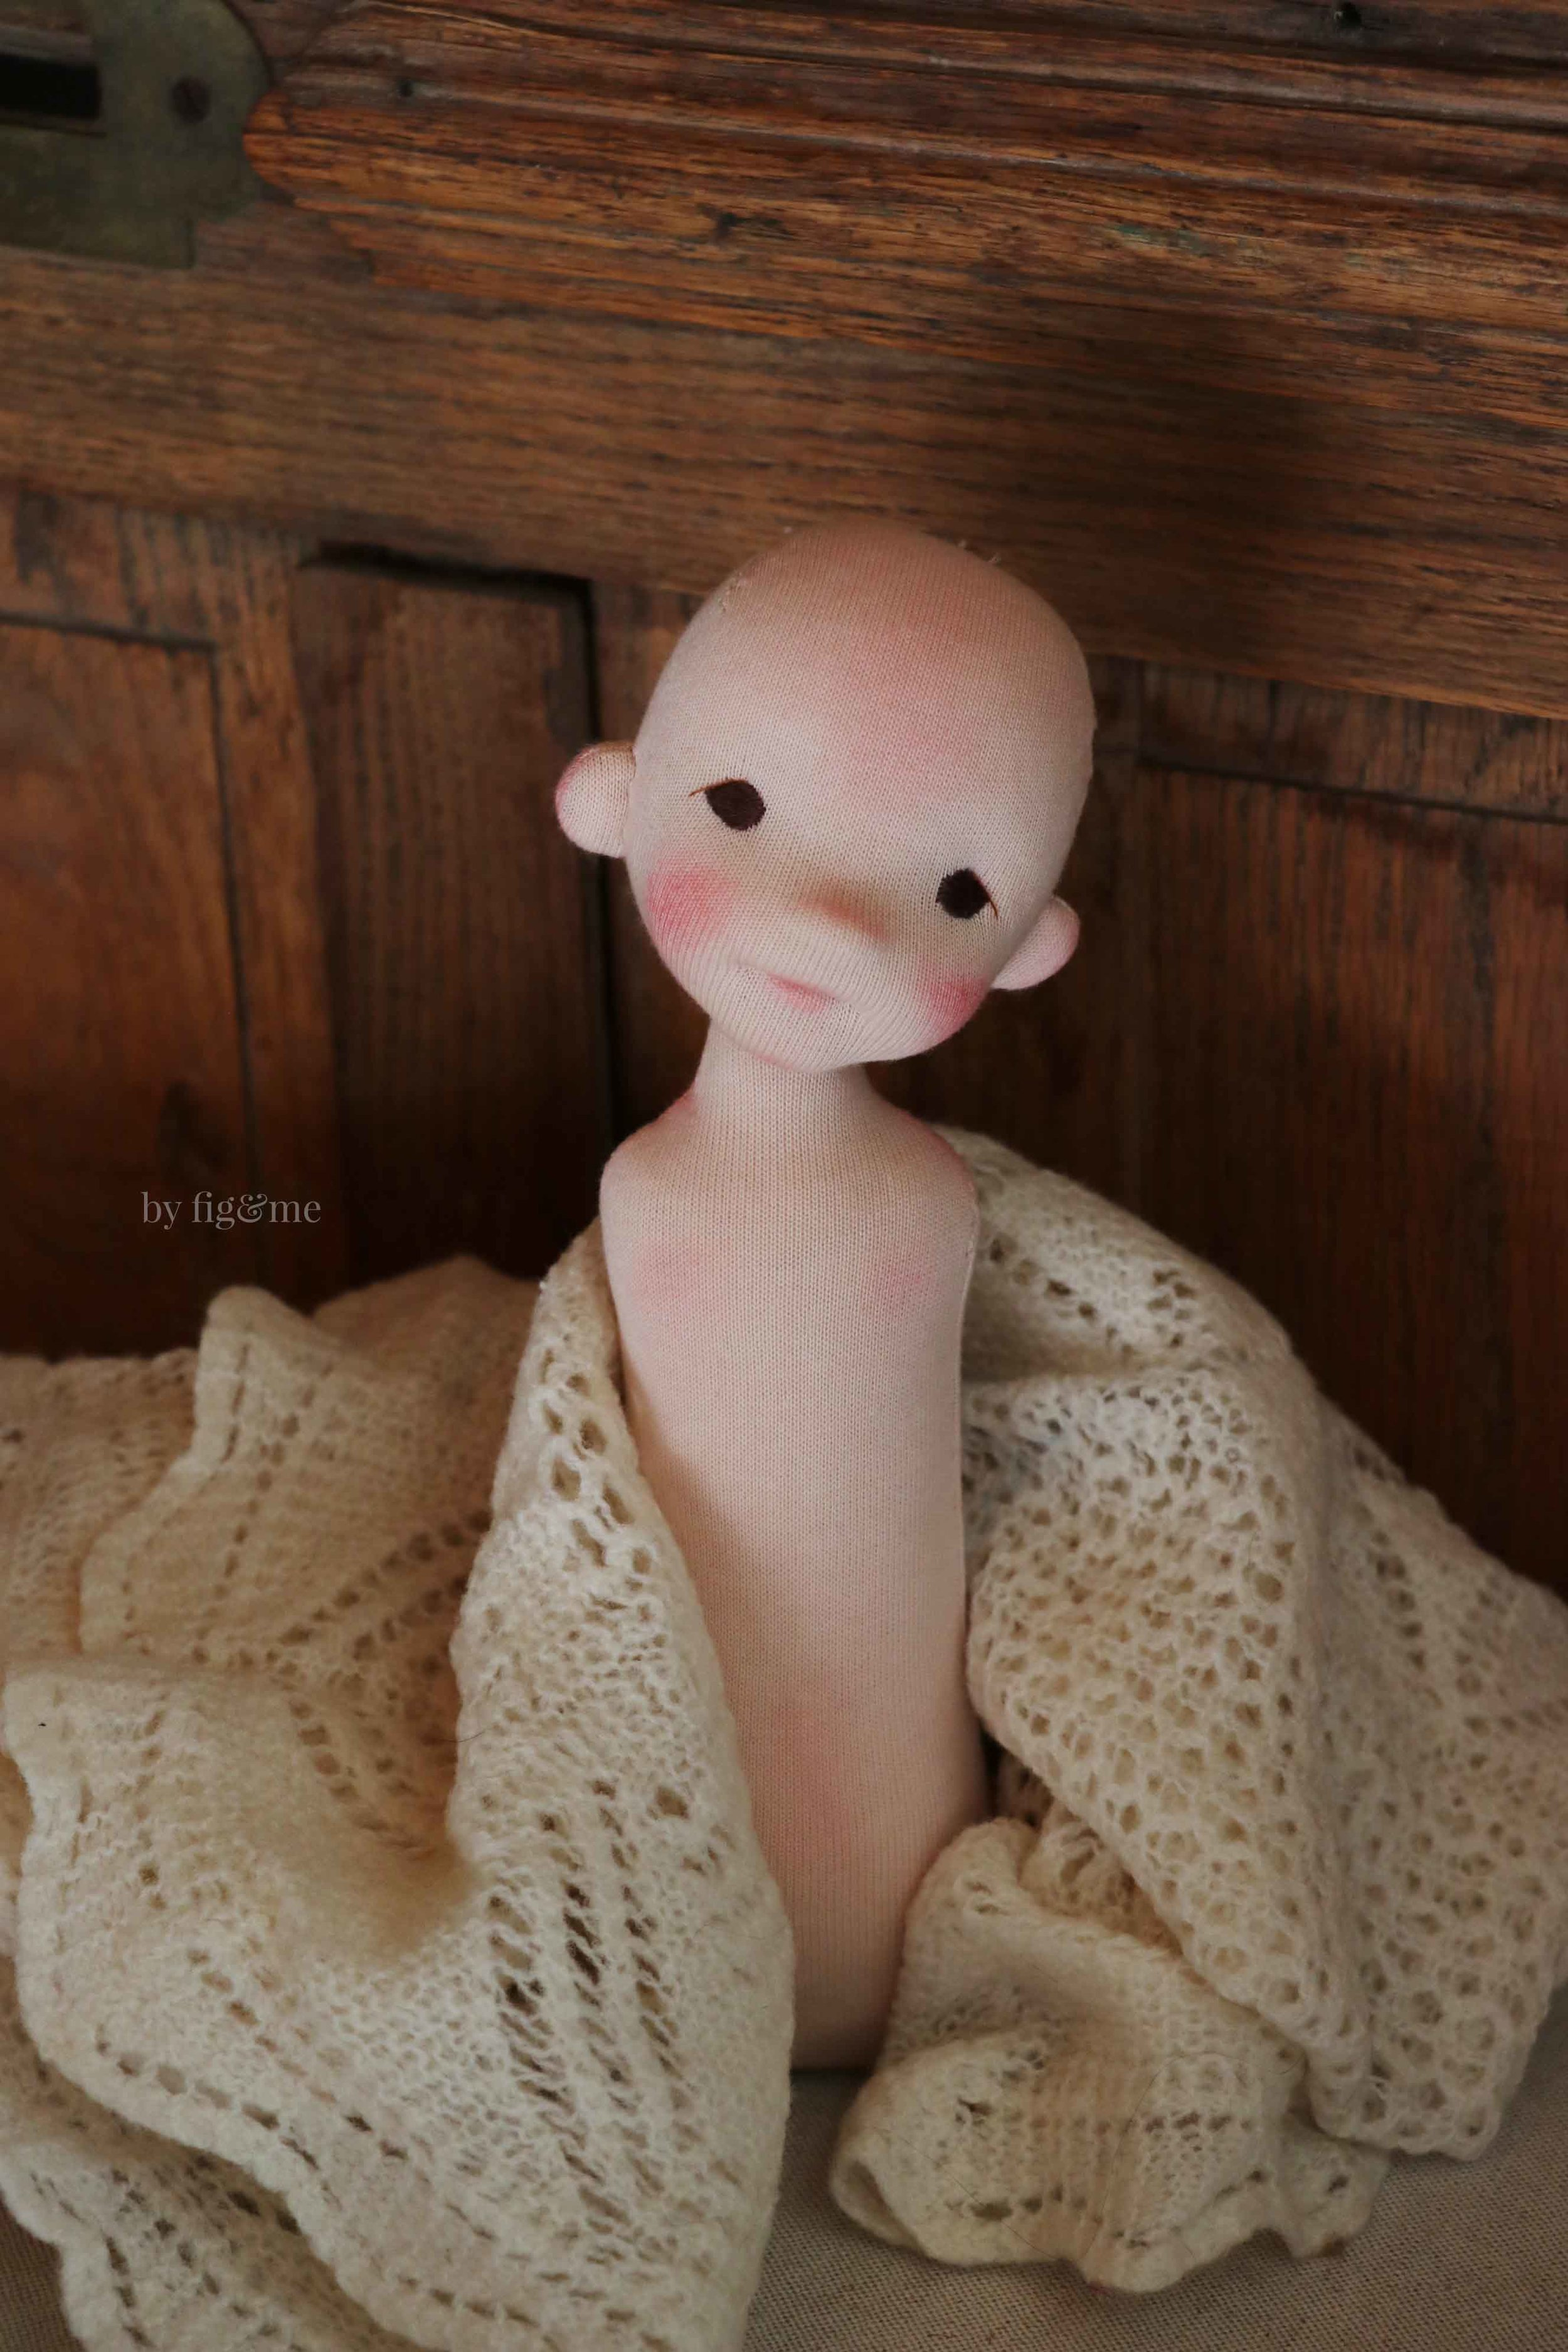 Rye, art doll by Fig and Me.